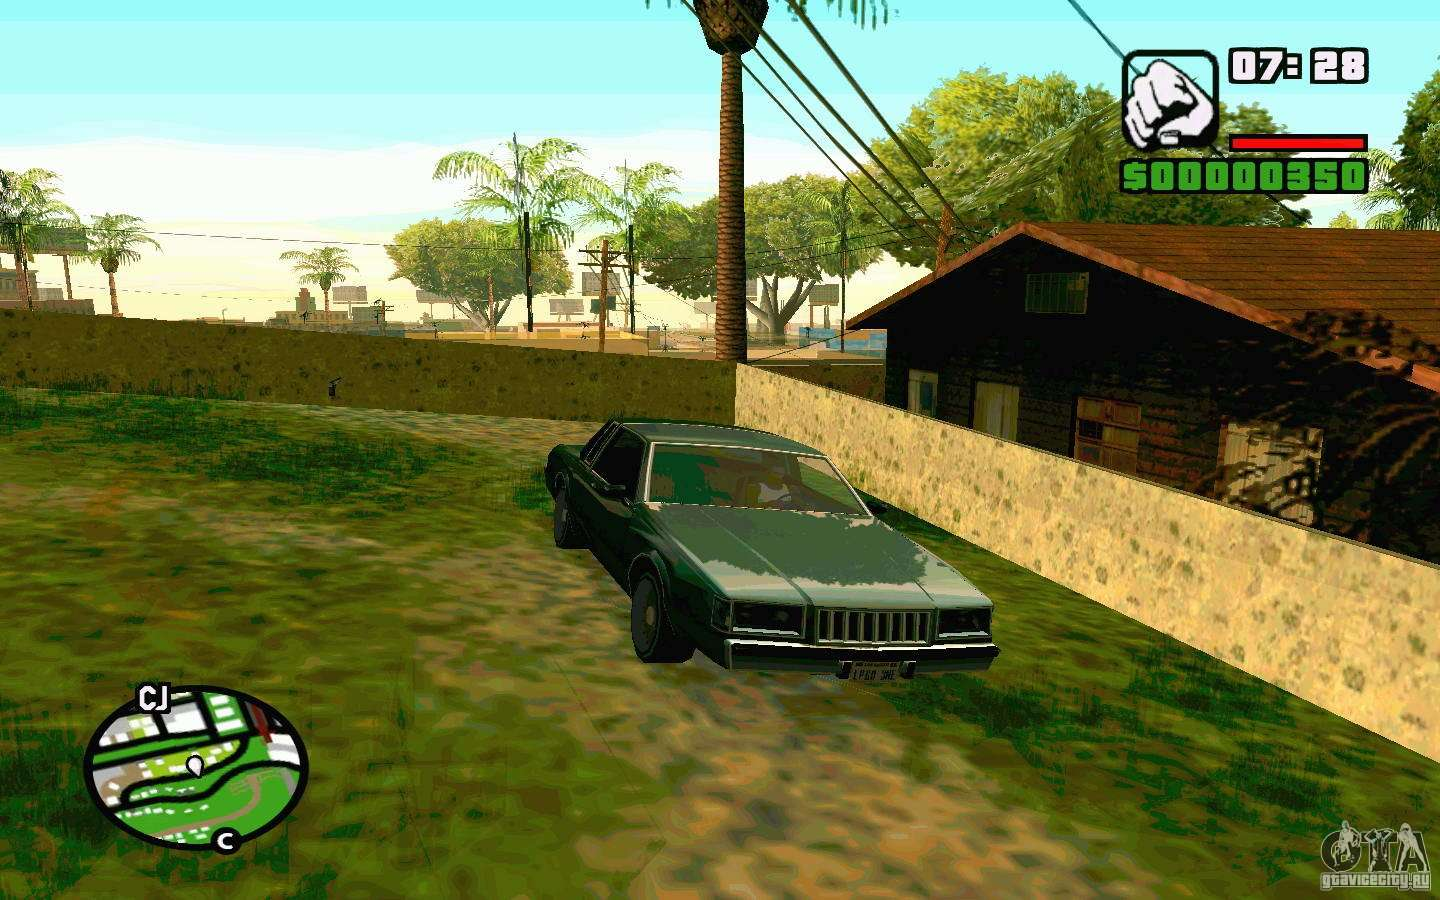 Gta Iv Full Version Crack Working In Pc Game Free San Andreas Jam Tangan Swatch Original 100 Susm401 Speed Up  Young Ampamp Trendy Read More Fukuoka Japan Japansnes Party Lets You Play Classic Roms With Friends Onlineadobe Photoshop Cc V142 Final Cracked Highly